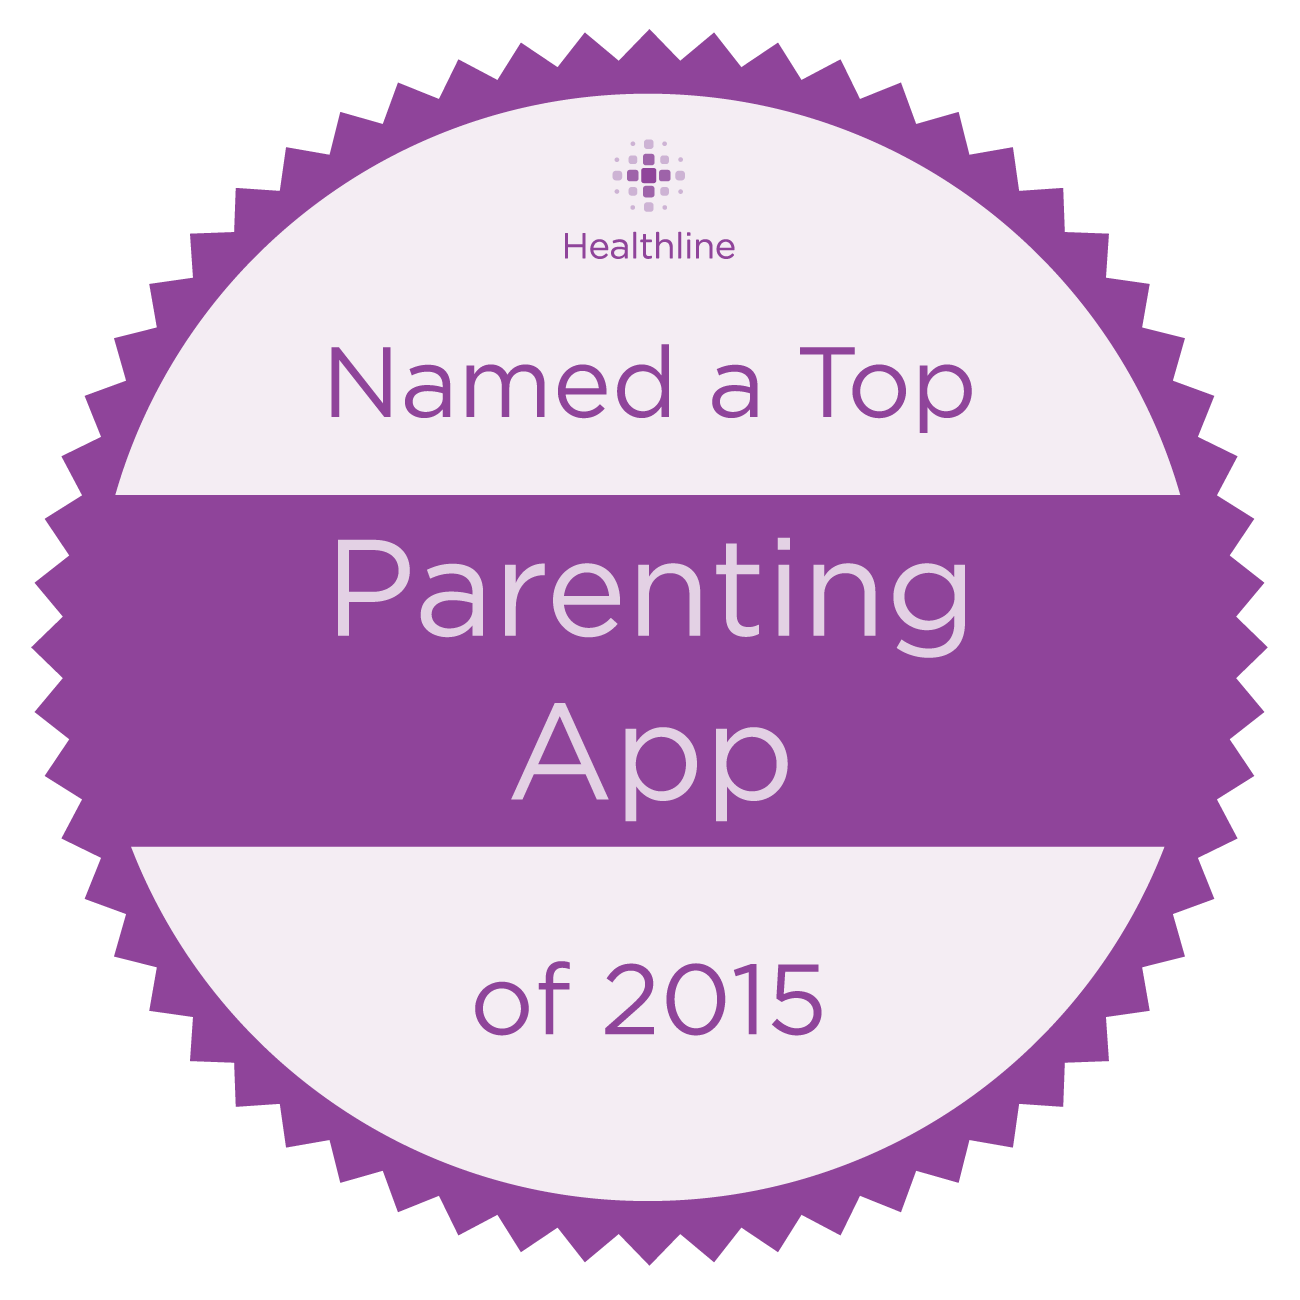 The Best Parenting iPhone and Android Apps of 2015